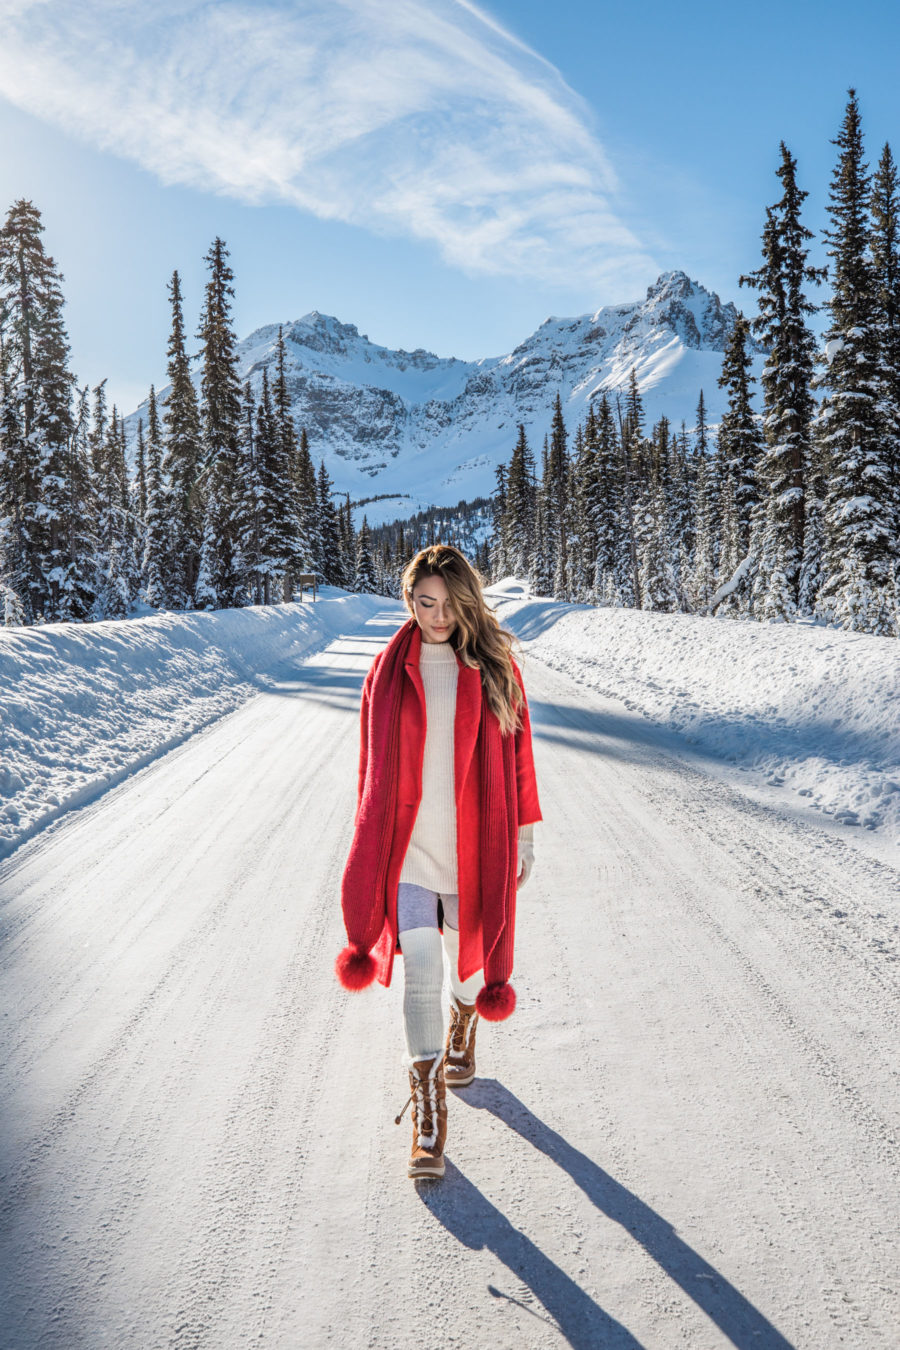 Winter Packing Tips - Red Coat with Pom Pom Scarf and Snow Boots // Notjessfashion.com